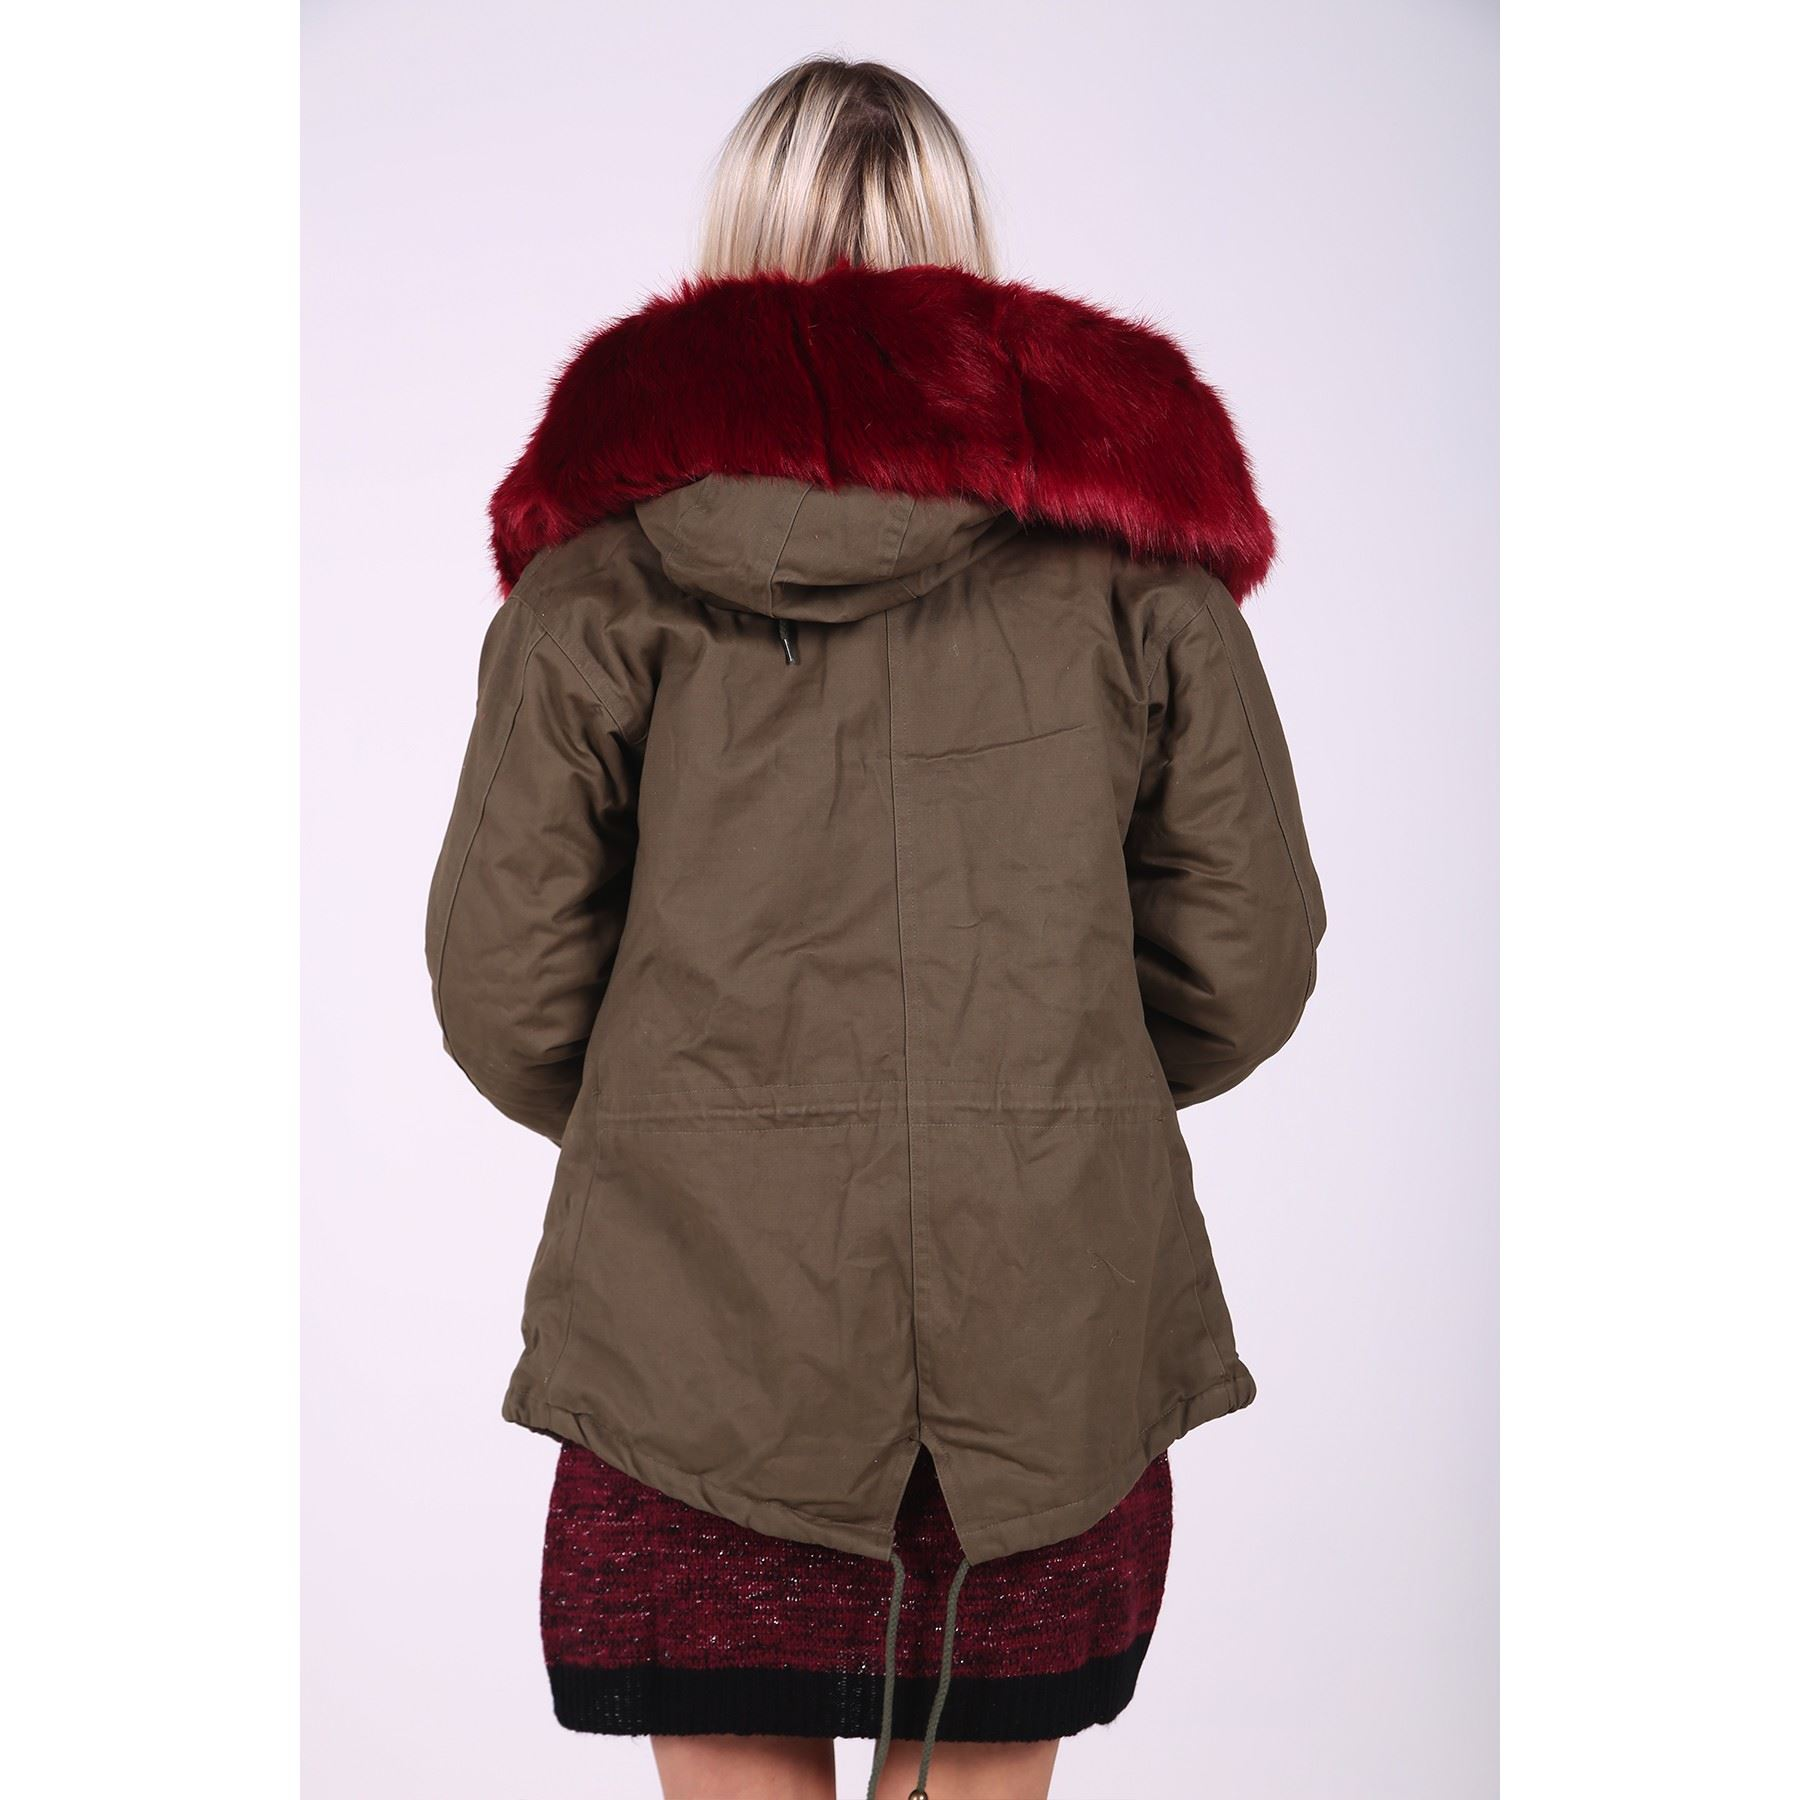 Faux Fur Hooded Jackets. Clothing. Women. Womens Coats & Jackets. Faux Fur Hooded Jackets. Showing 48 of results that match your query. Product - Womens Plus Size Warm Winter Loose Faux Fur Parka Coat Overcoat Long Sleeve Jacket Outwear Luxury .